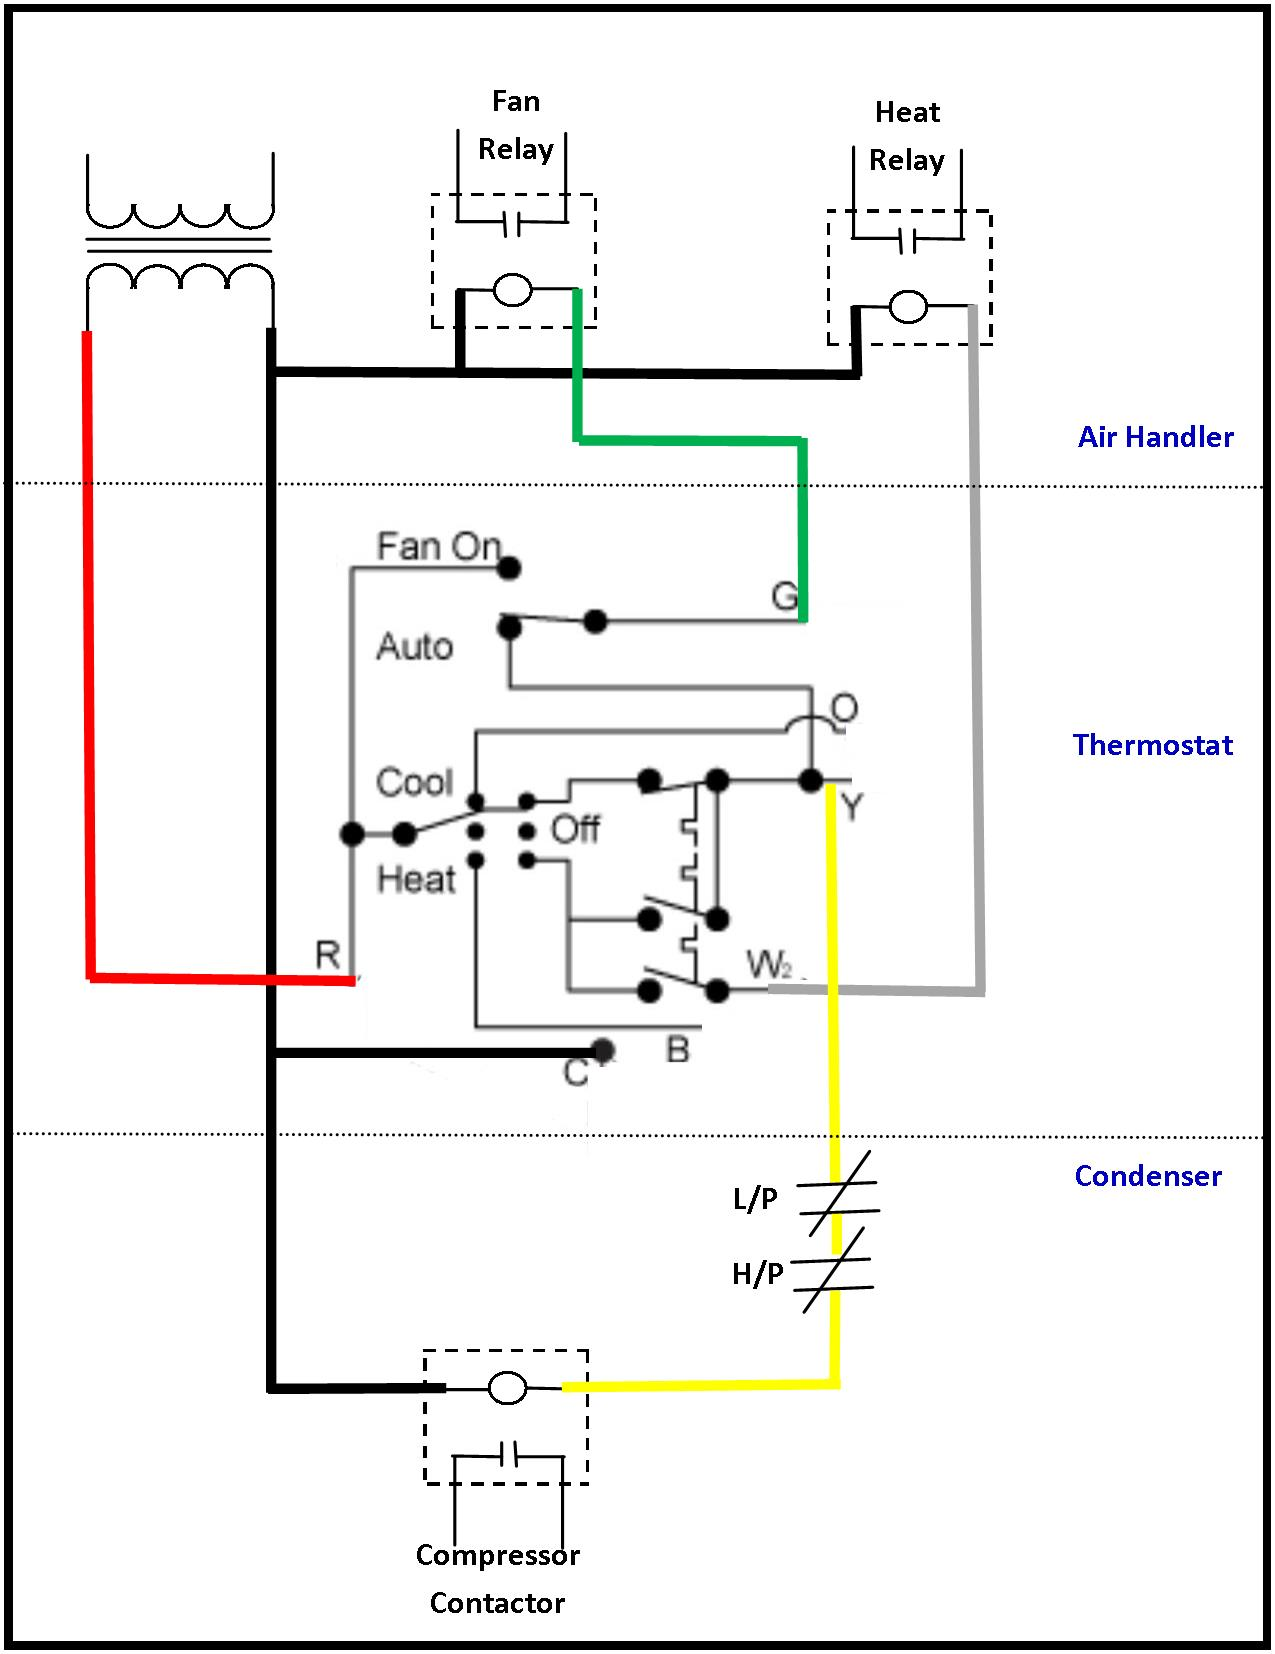 contactor relay wiring diagram  contactor  free engine